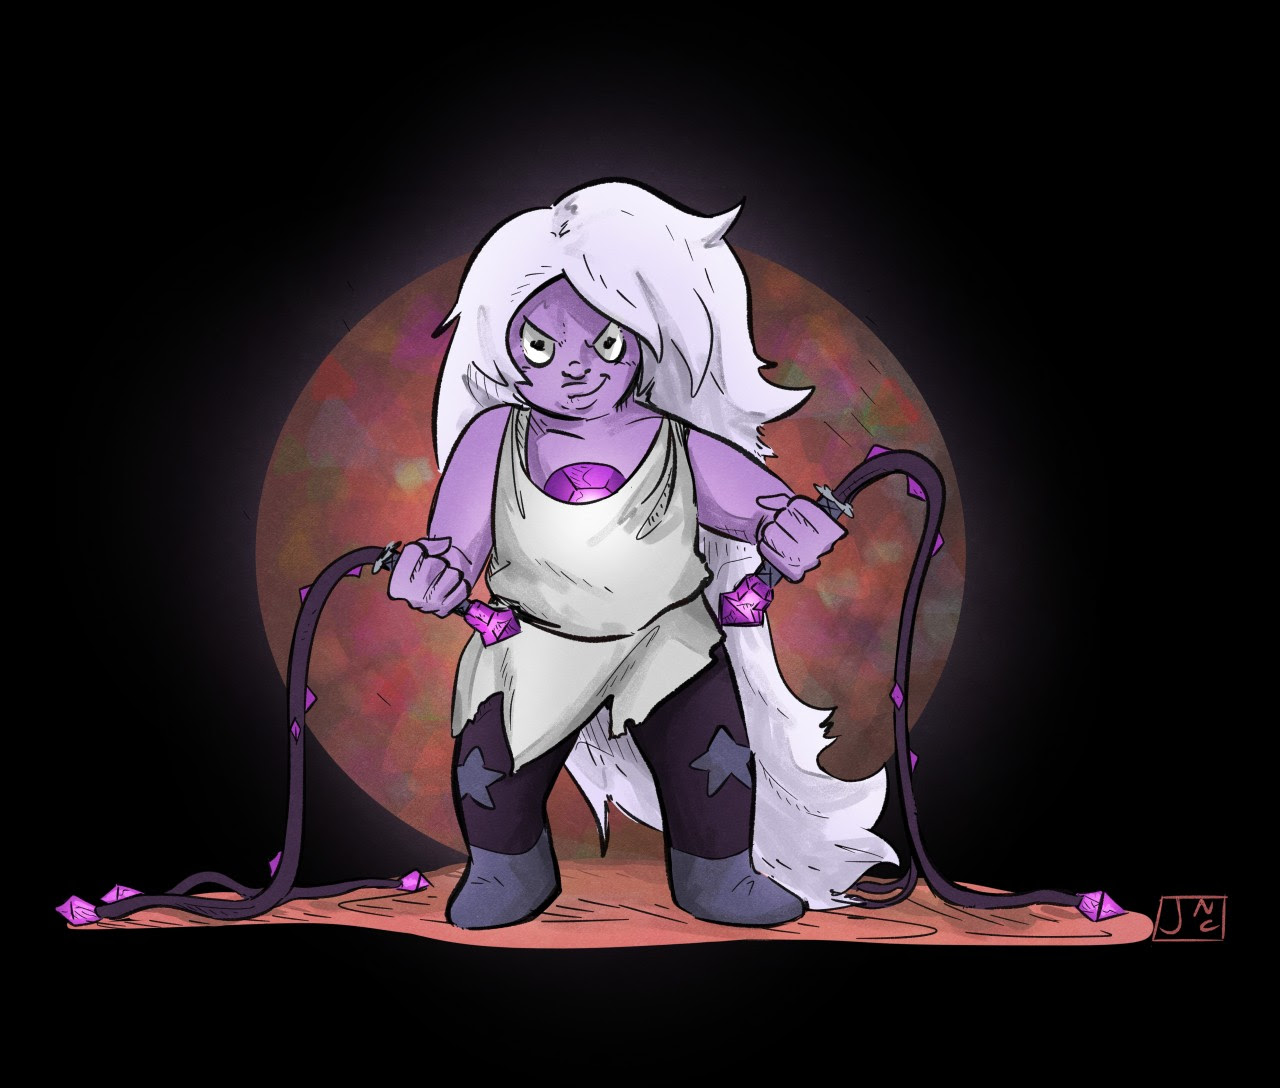 I love how every time amethyst reforms she gets more and more punk :-)